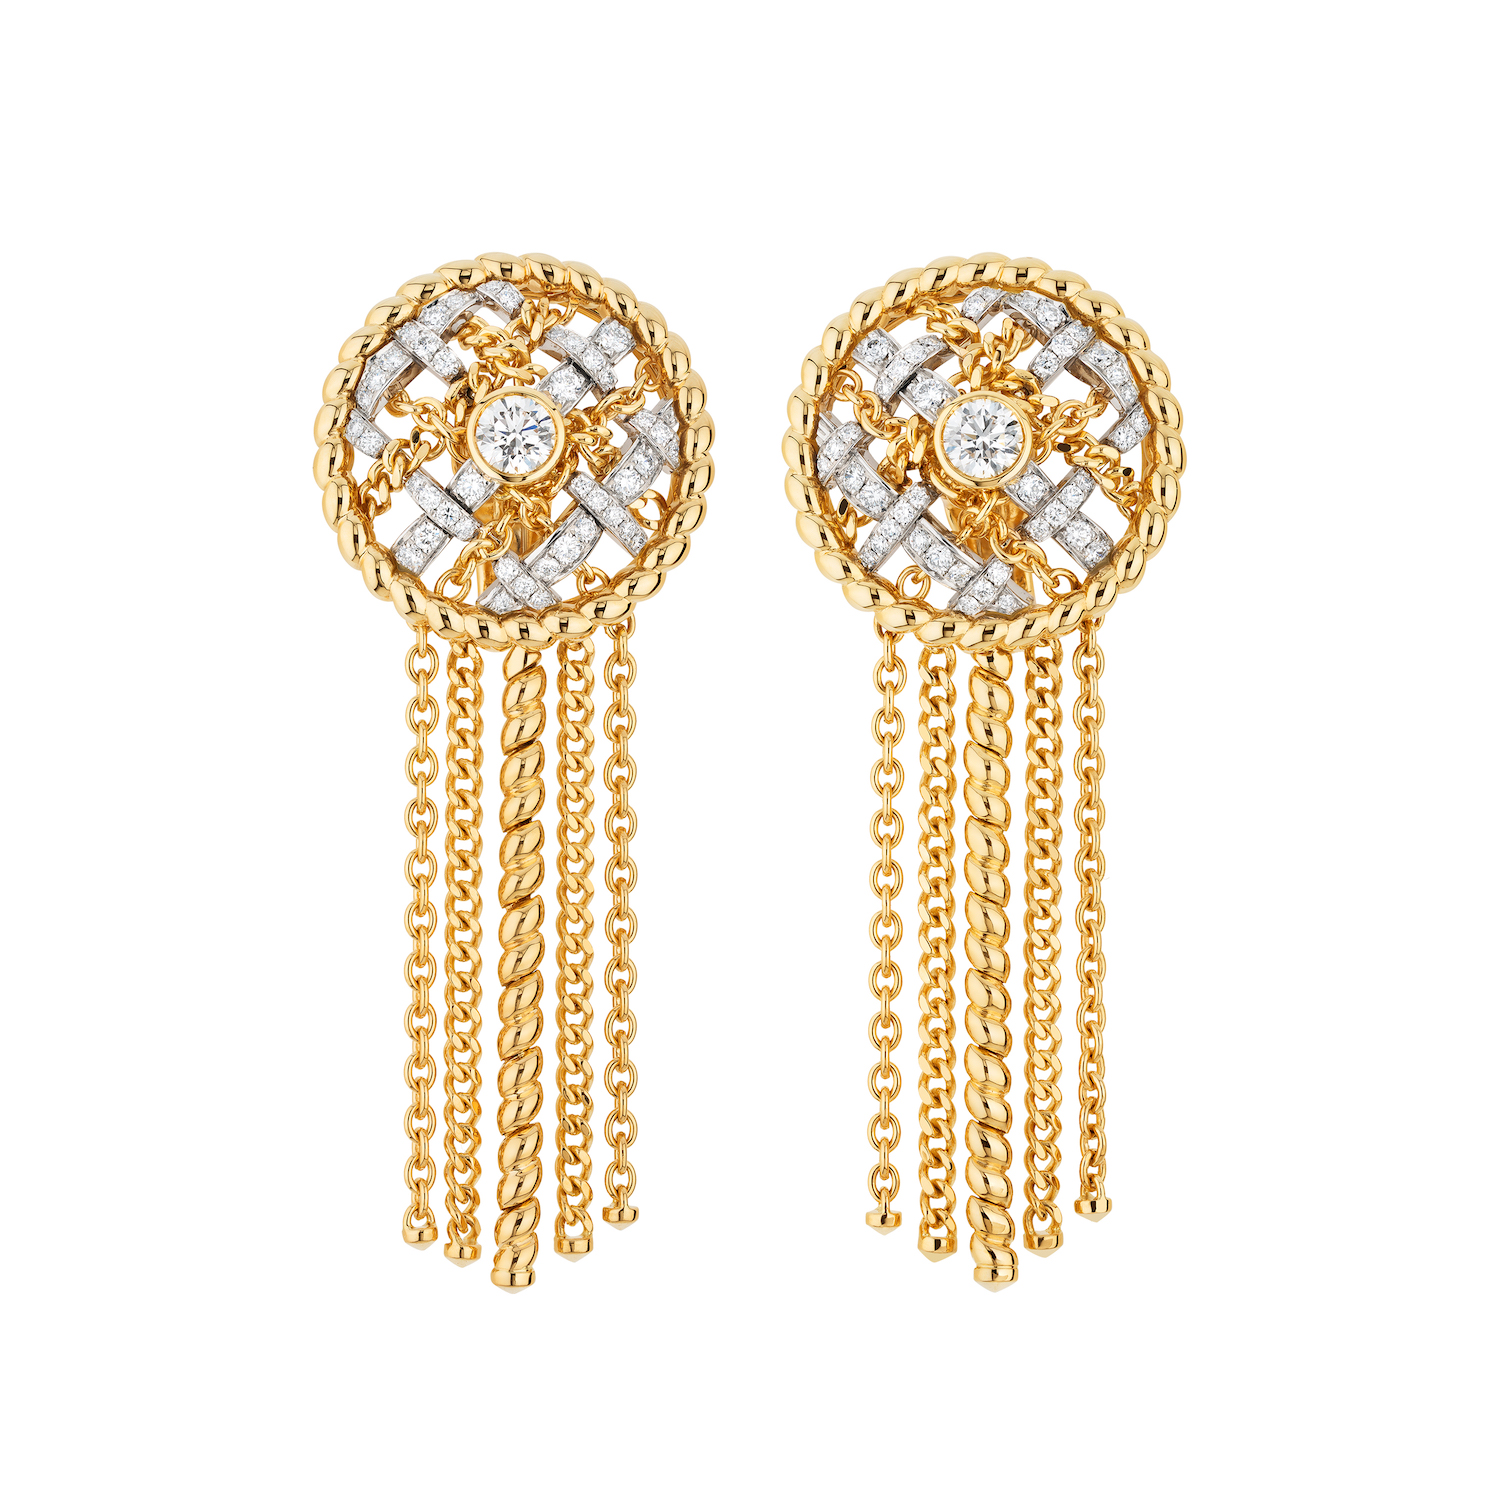 Tweed Cordage Earrings (Photo credit: Chanel)